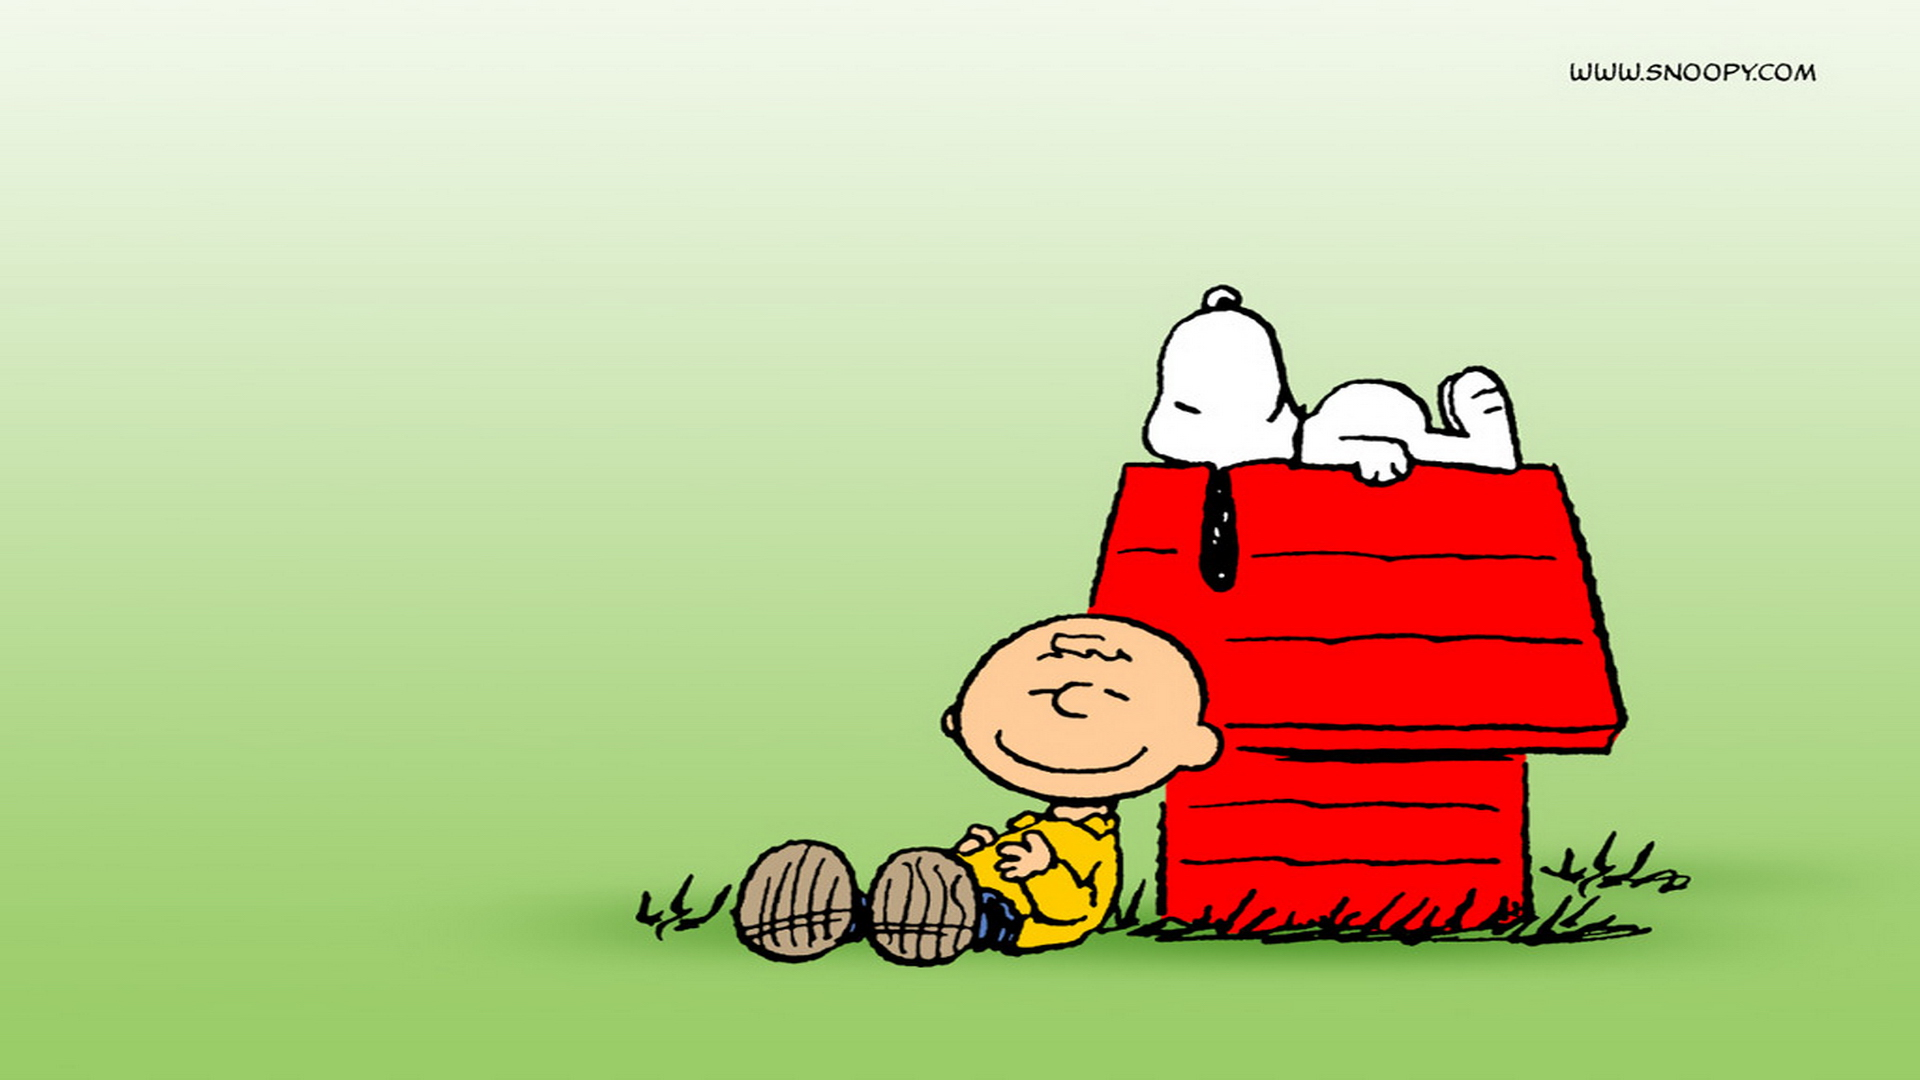 Peanuts computer wallpapers desktop backgrounds 1920x1080 id 519578 - Snoopy wallpaper for walls ...